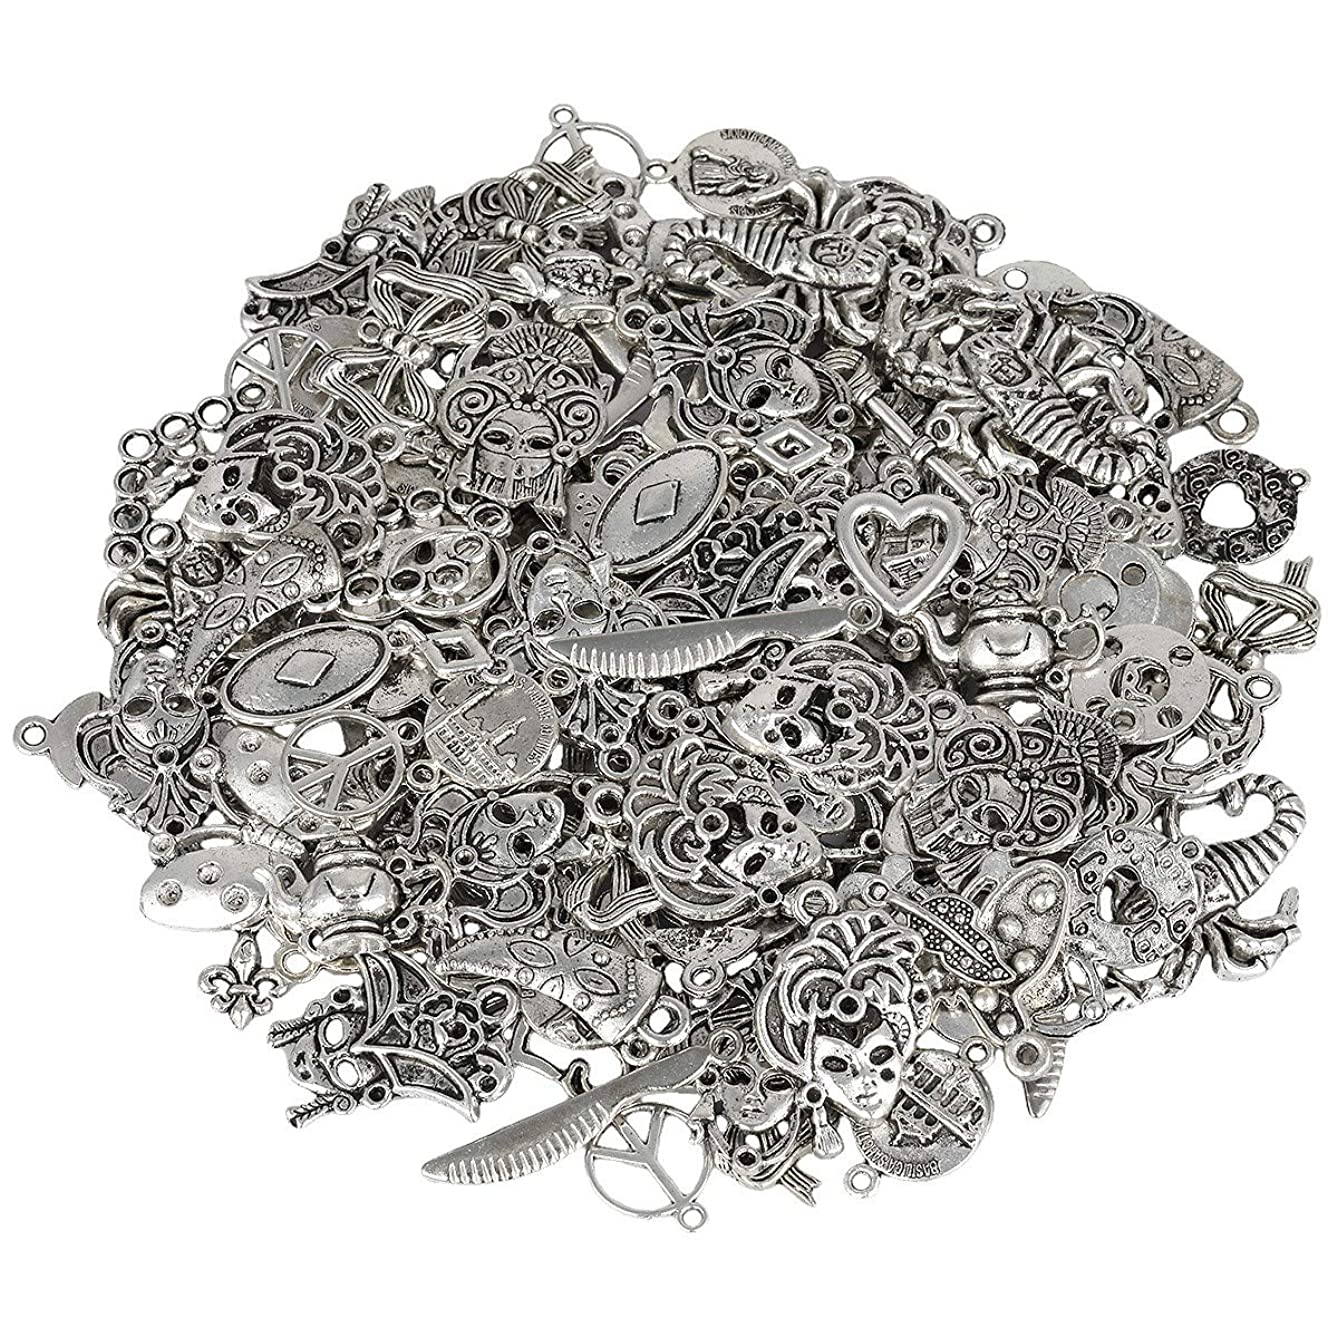 SUNYIK Vintage Tibetan Silver Loose Spacer Charms for Jewelry Making DIY 0.5lb (230 Grams), 0.2